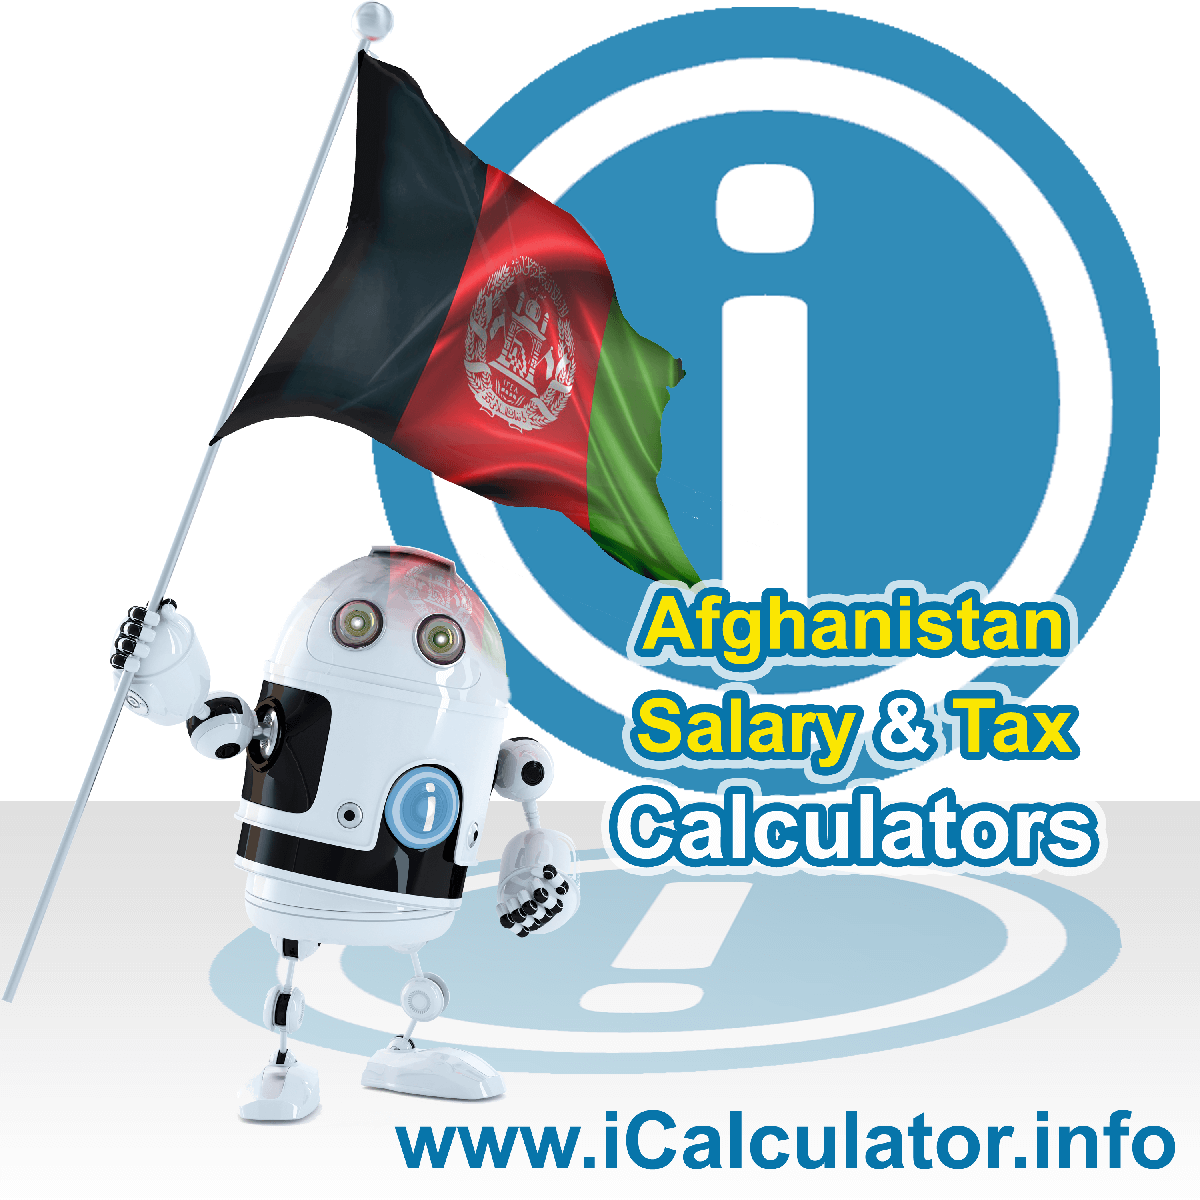 Afghanistan Tax Calculator. This image shows the Afghanistan flag and information relating to the tax formula for the Afghanistan Salary Calculator